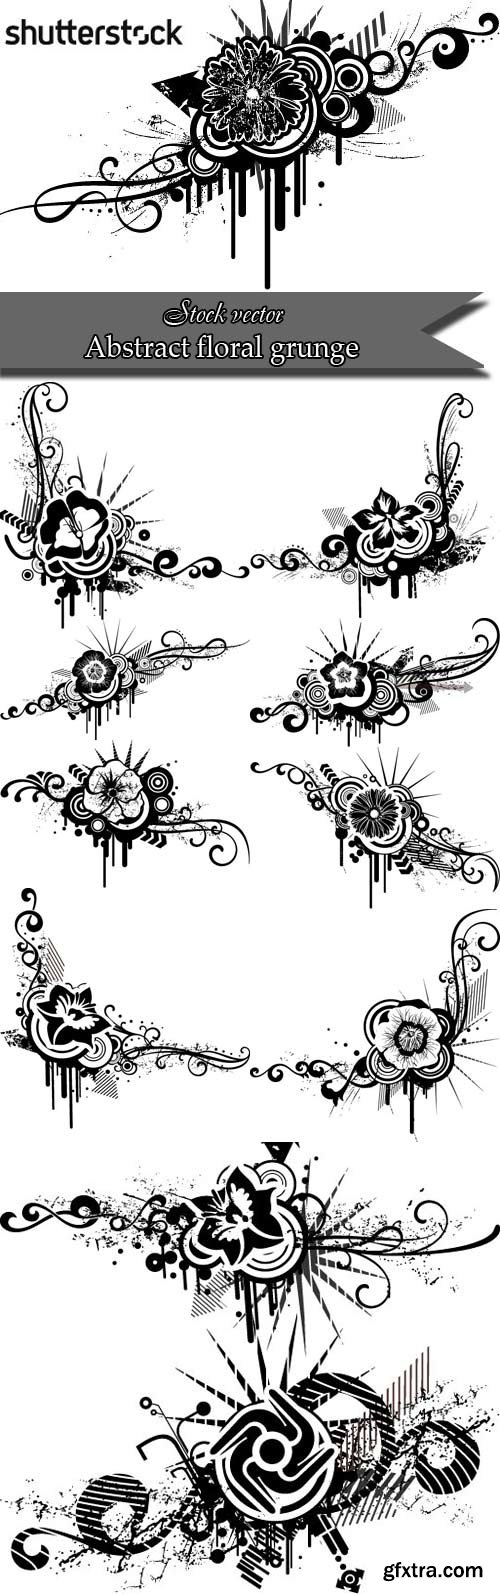 Abstract floral grunge